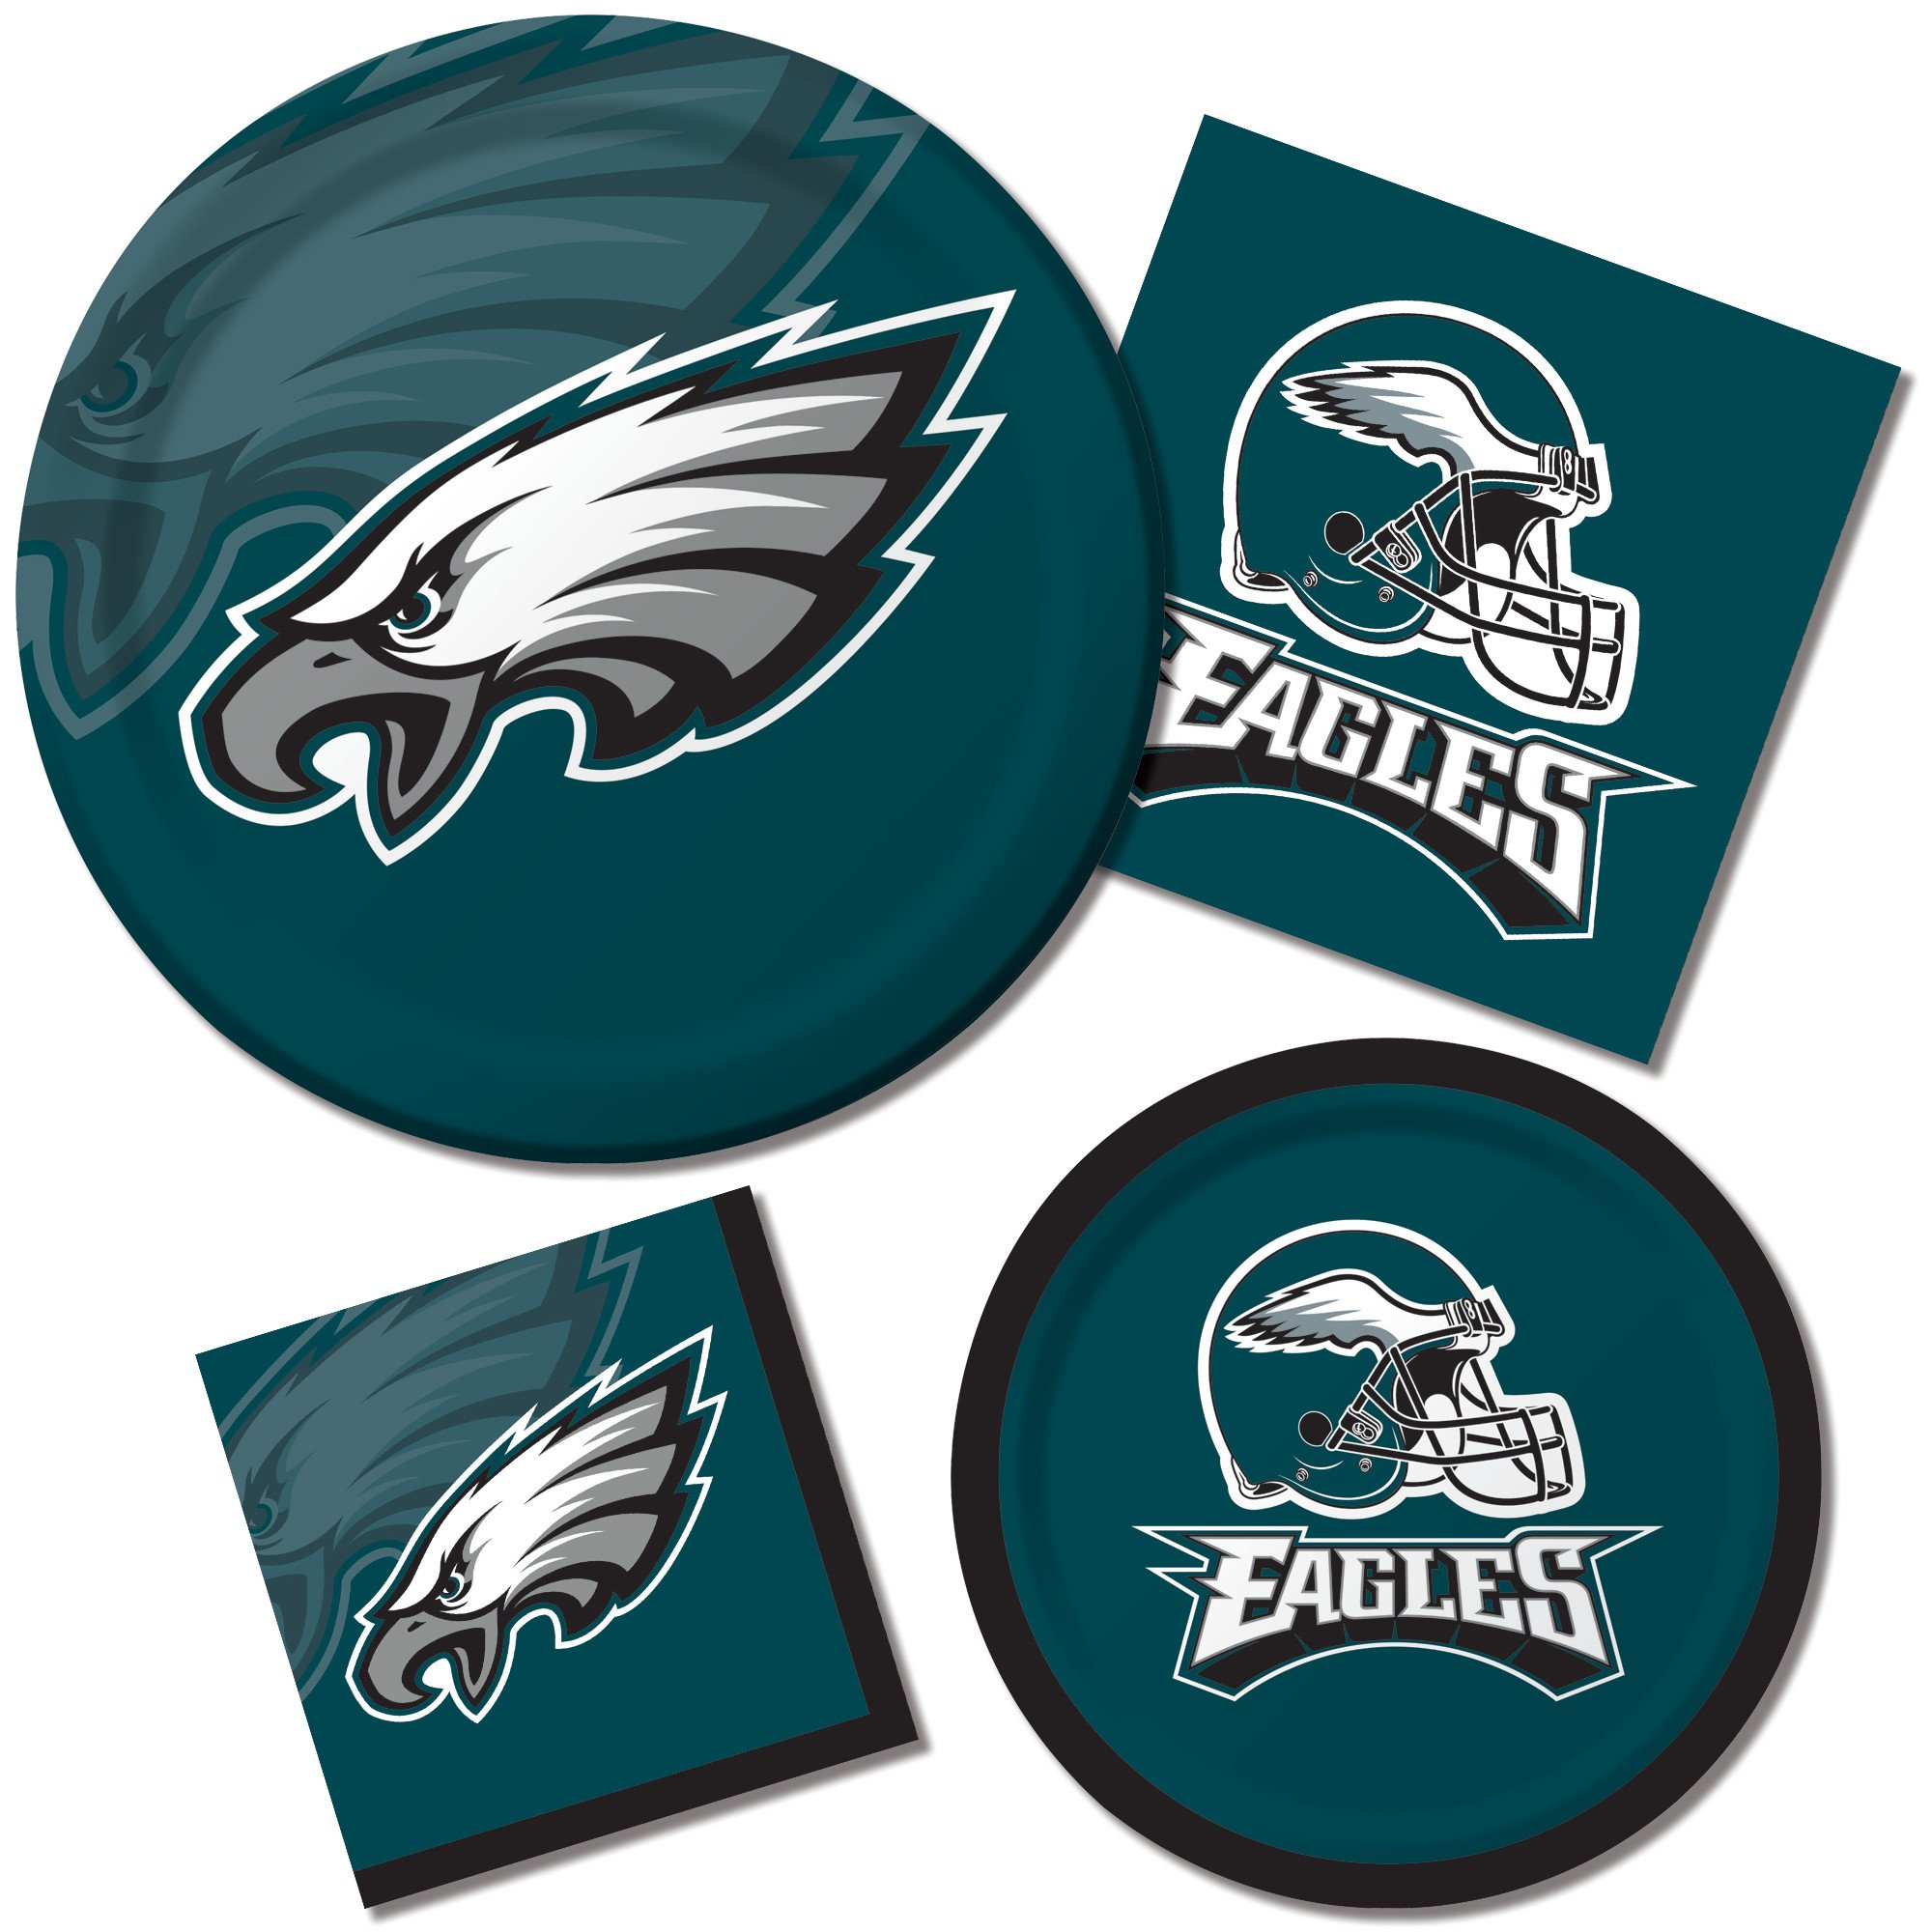 Creative Converting Officially Licensed NFL Dinner Paper Plates, 96-Count, Philadelphia Eagles - 429524 by Creative Converting (Image #1)